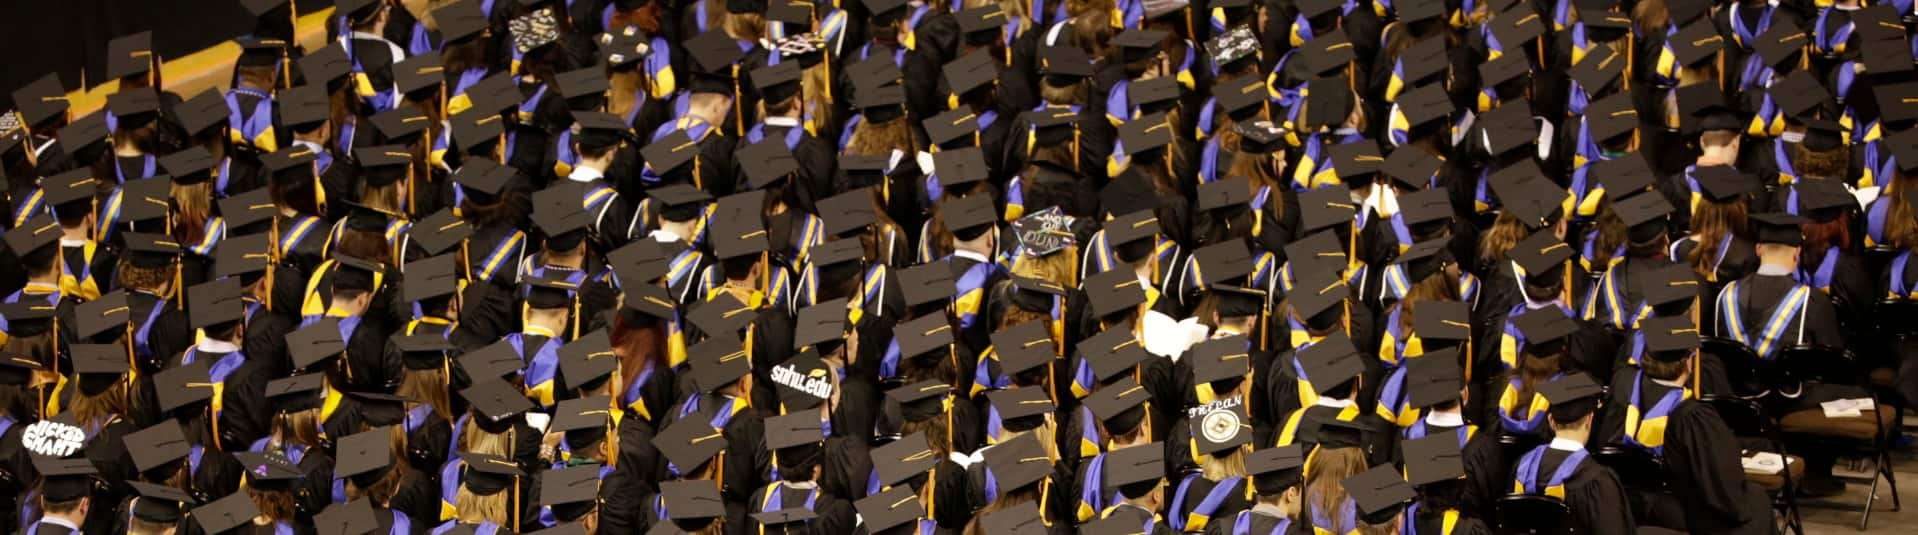 Image of students with caps and gowns at commencement